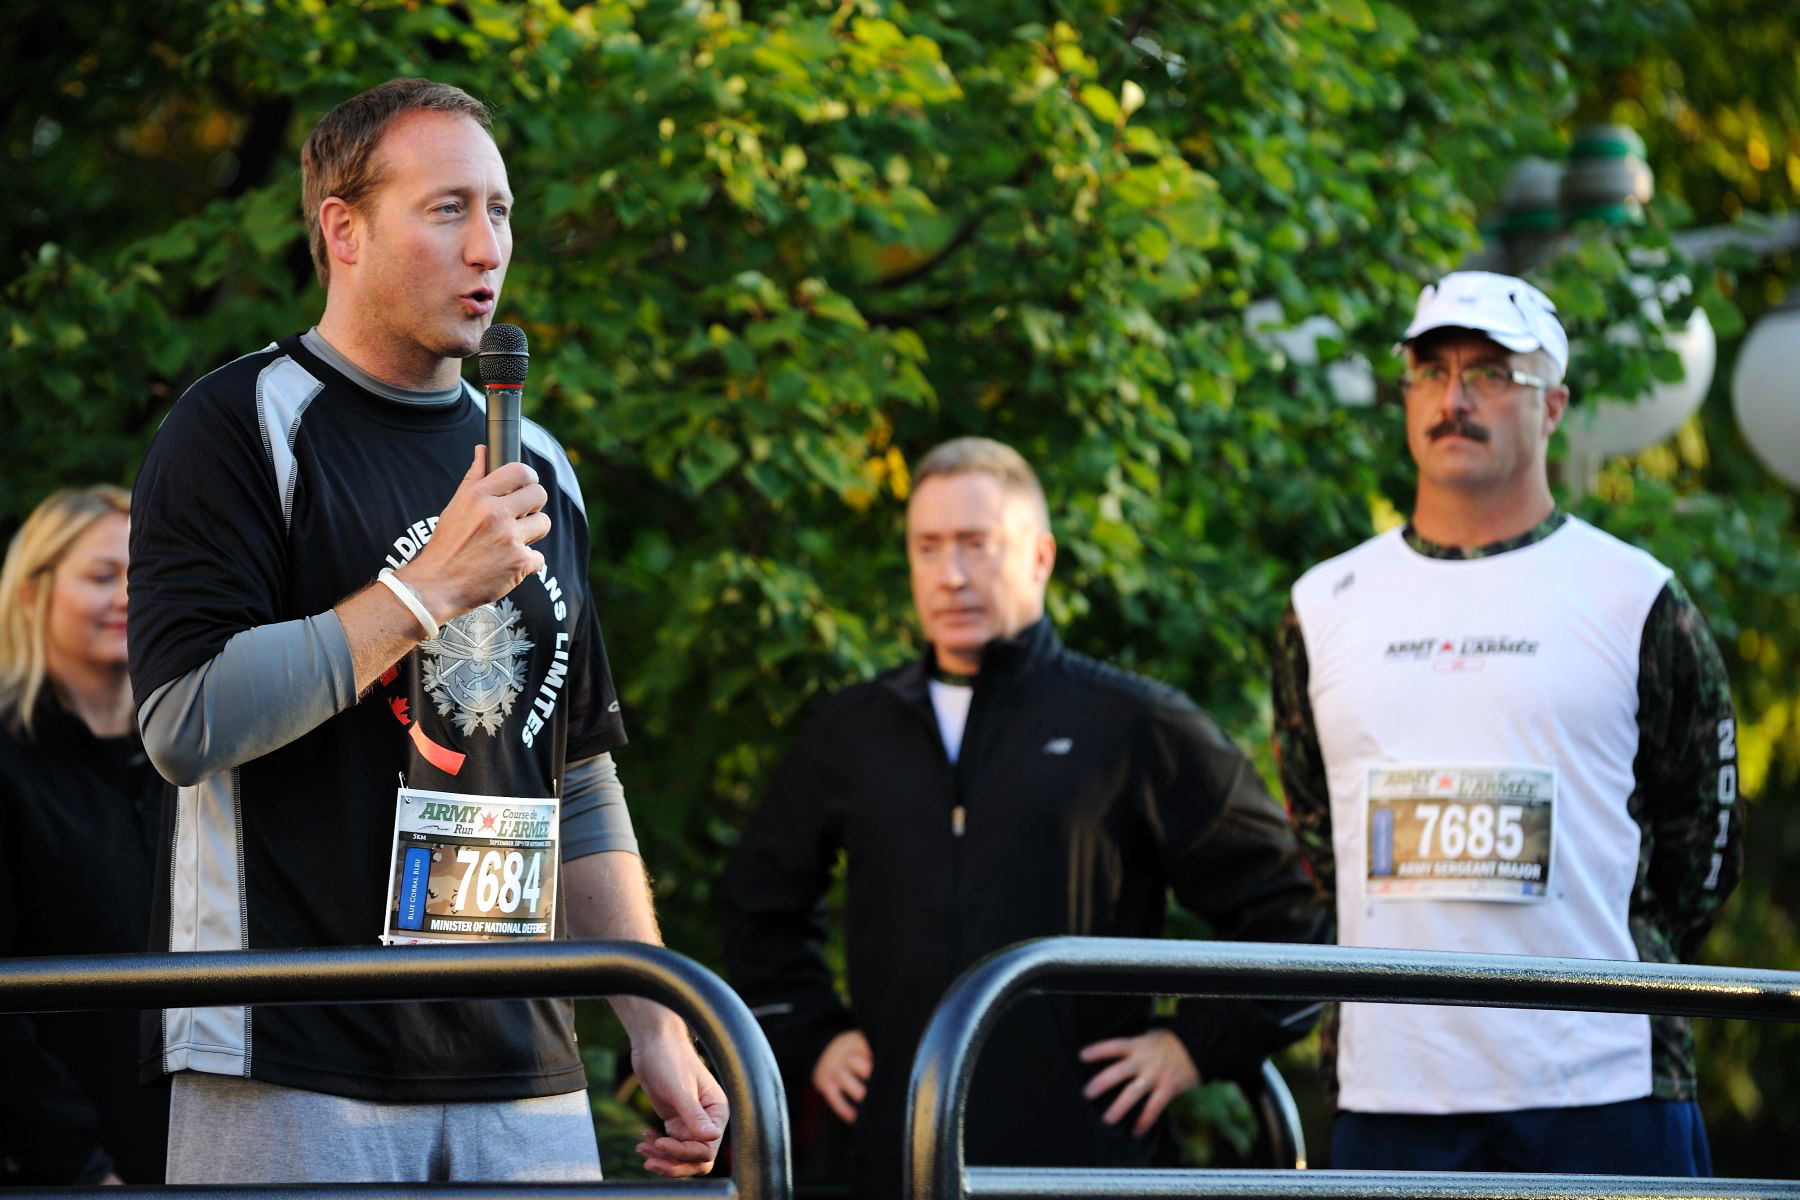 Minister of National Defence the Honourable Peter MacKay also addressed runners in the presence of Lieutenant General Peter Devlin, Chief of the Land Staff (centre).